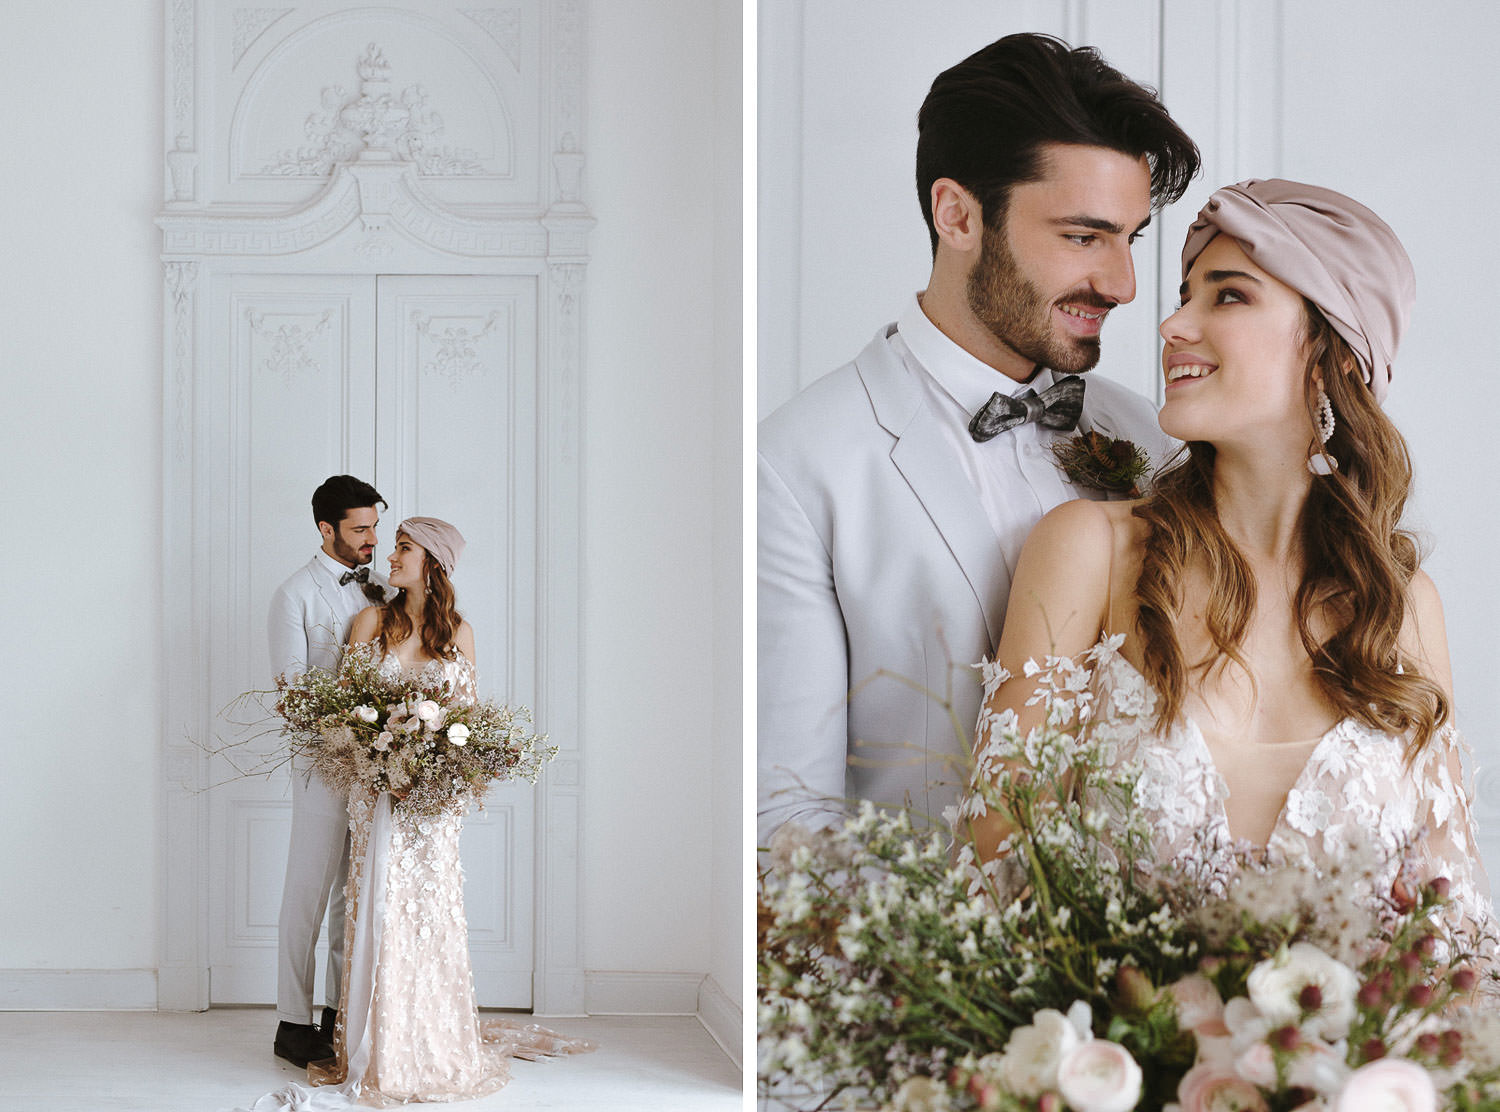 Lake Como villa wedding: gorgeous couple portraits at Villa Bianca Stucchi | Photo: Camilla Anchisi